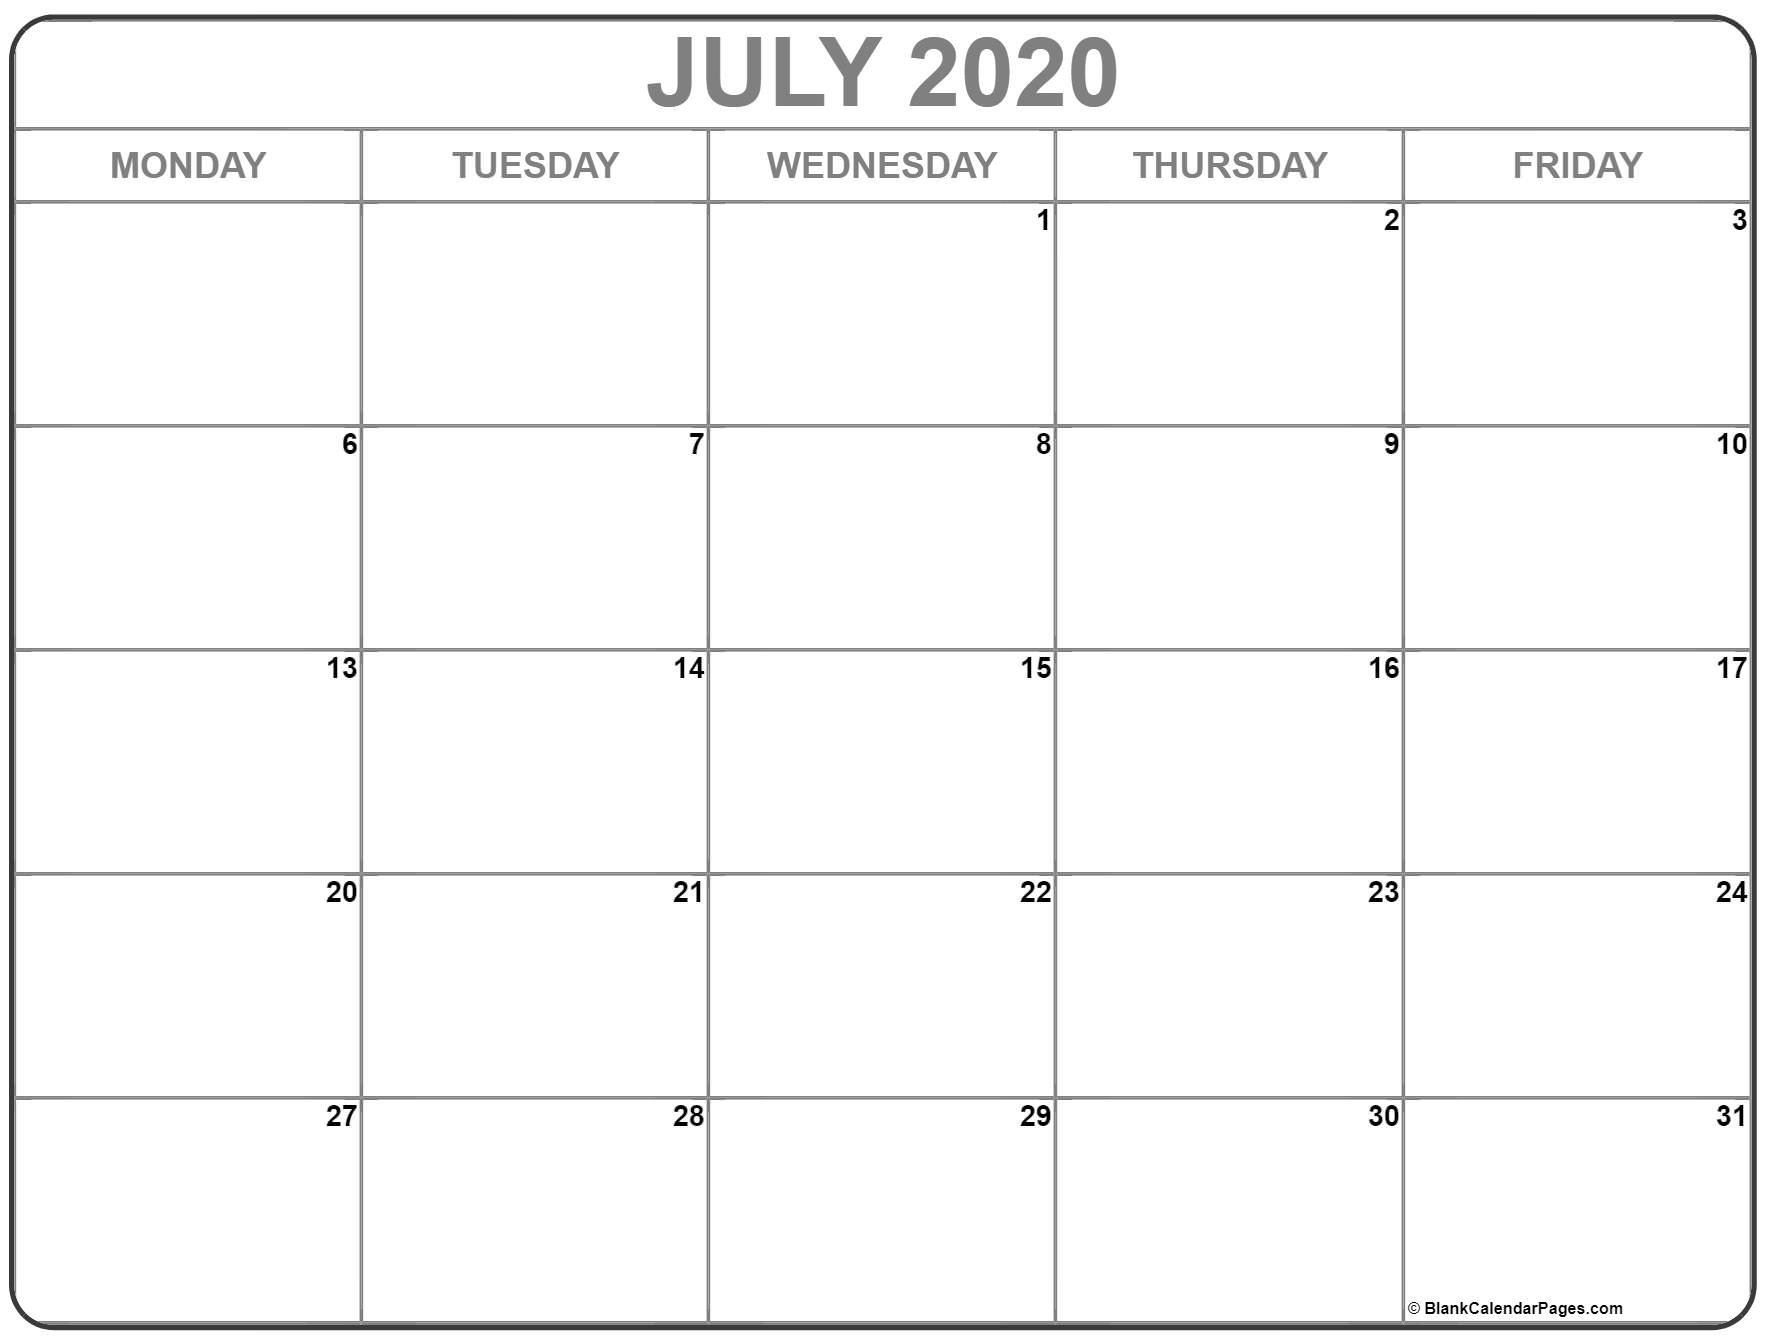 July 2020 Monday Calendar | Monday To Sunday in Monday-Friday Calendar Template